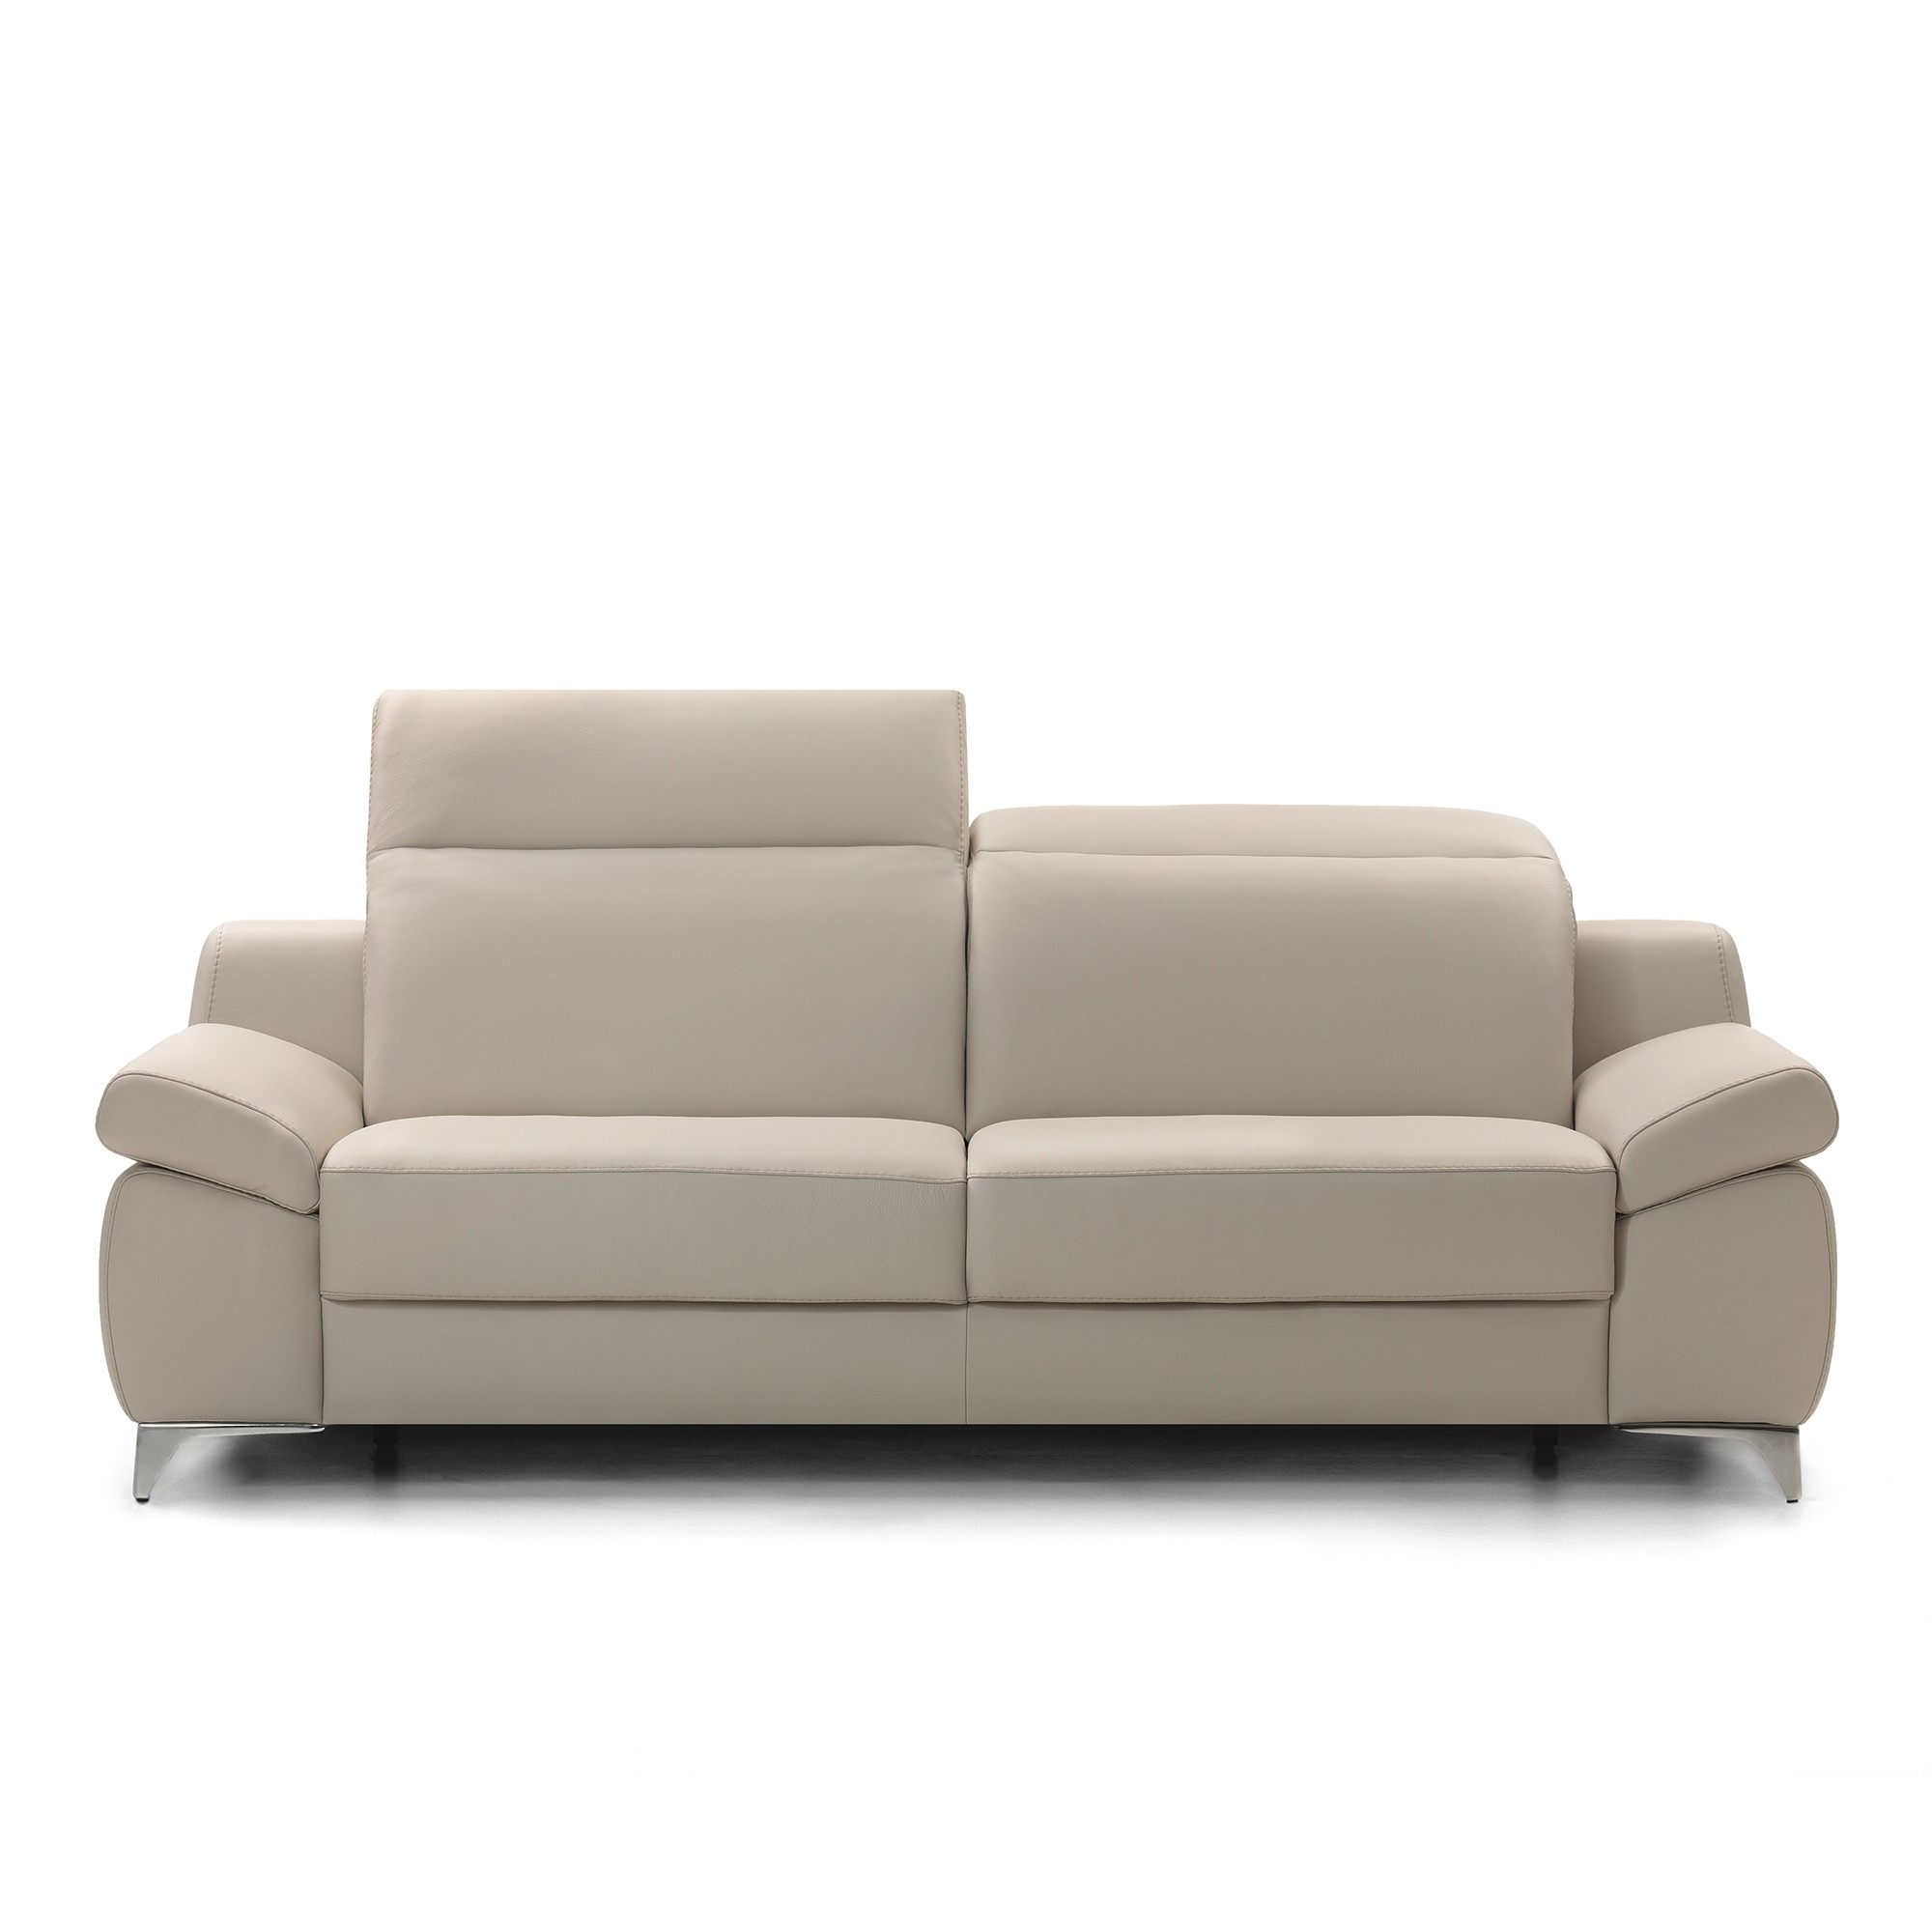 Rom Wren Power Recliner Sofa Large – Recliner Sofas – Cookes Furniture In Recliner Sofas (View 3 of 10)